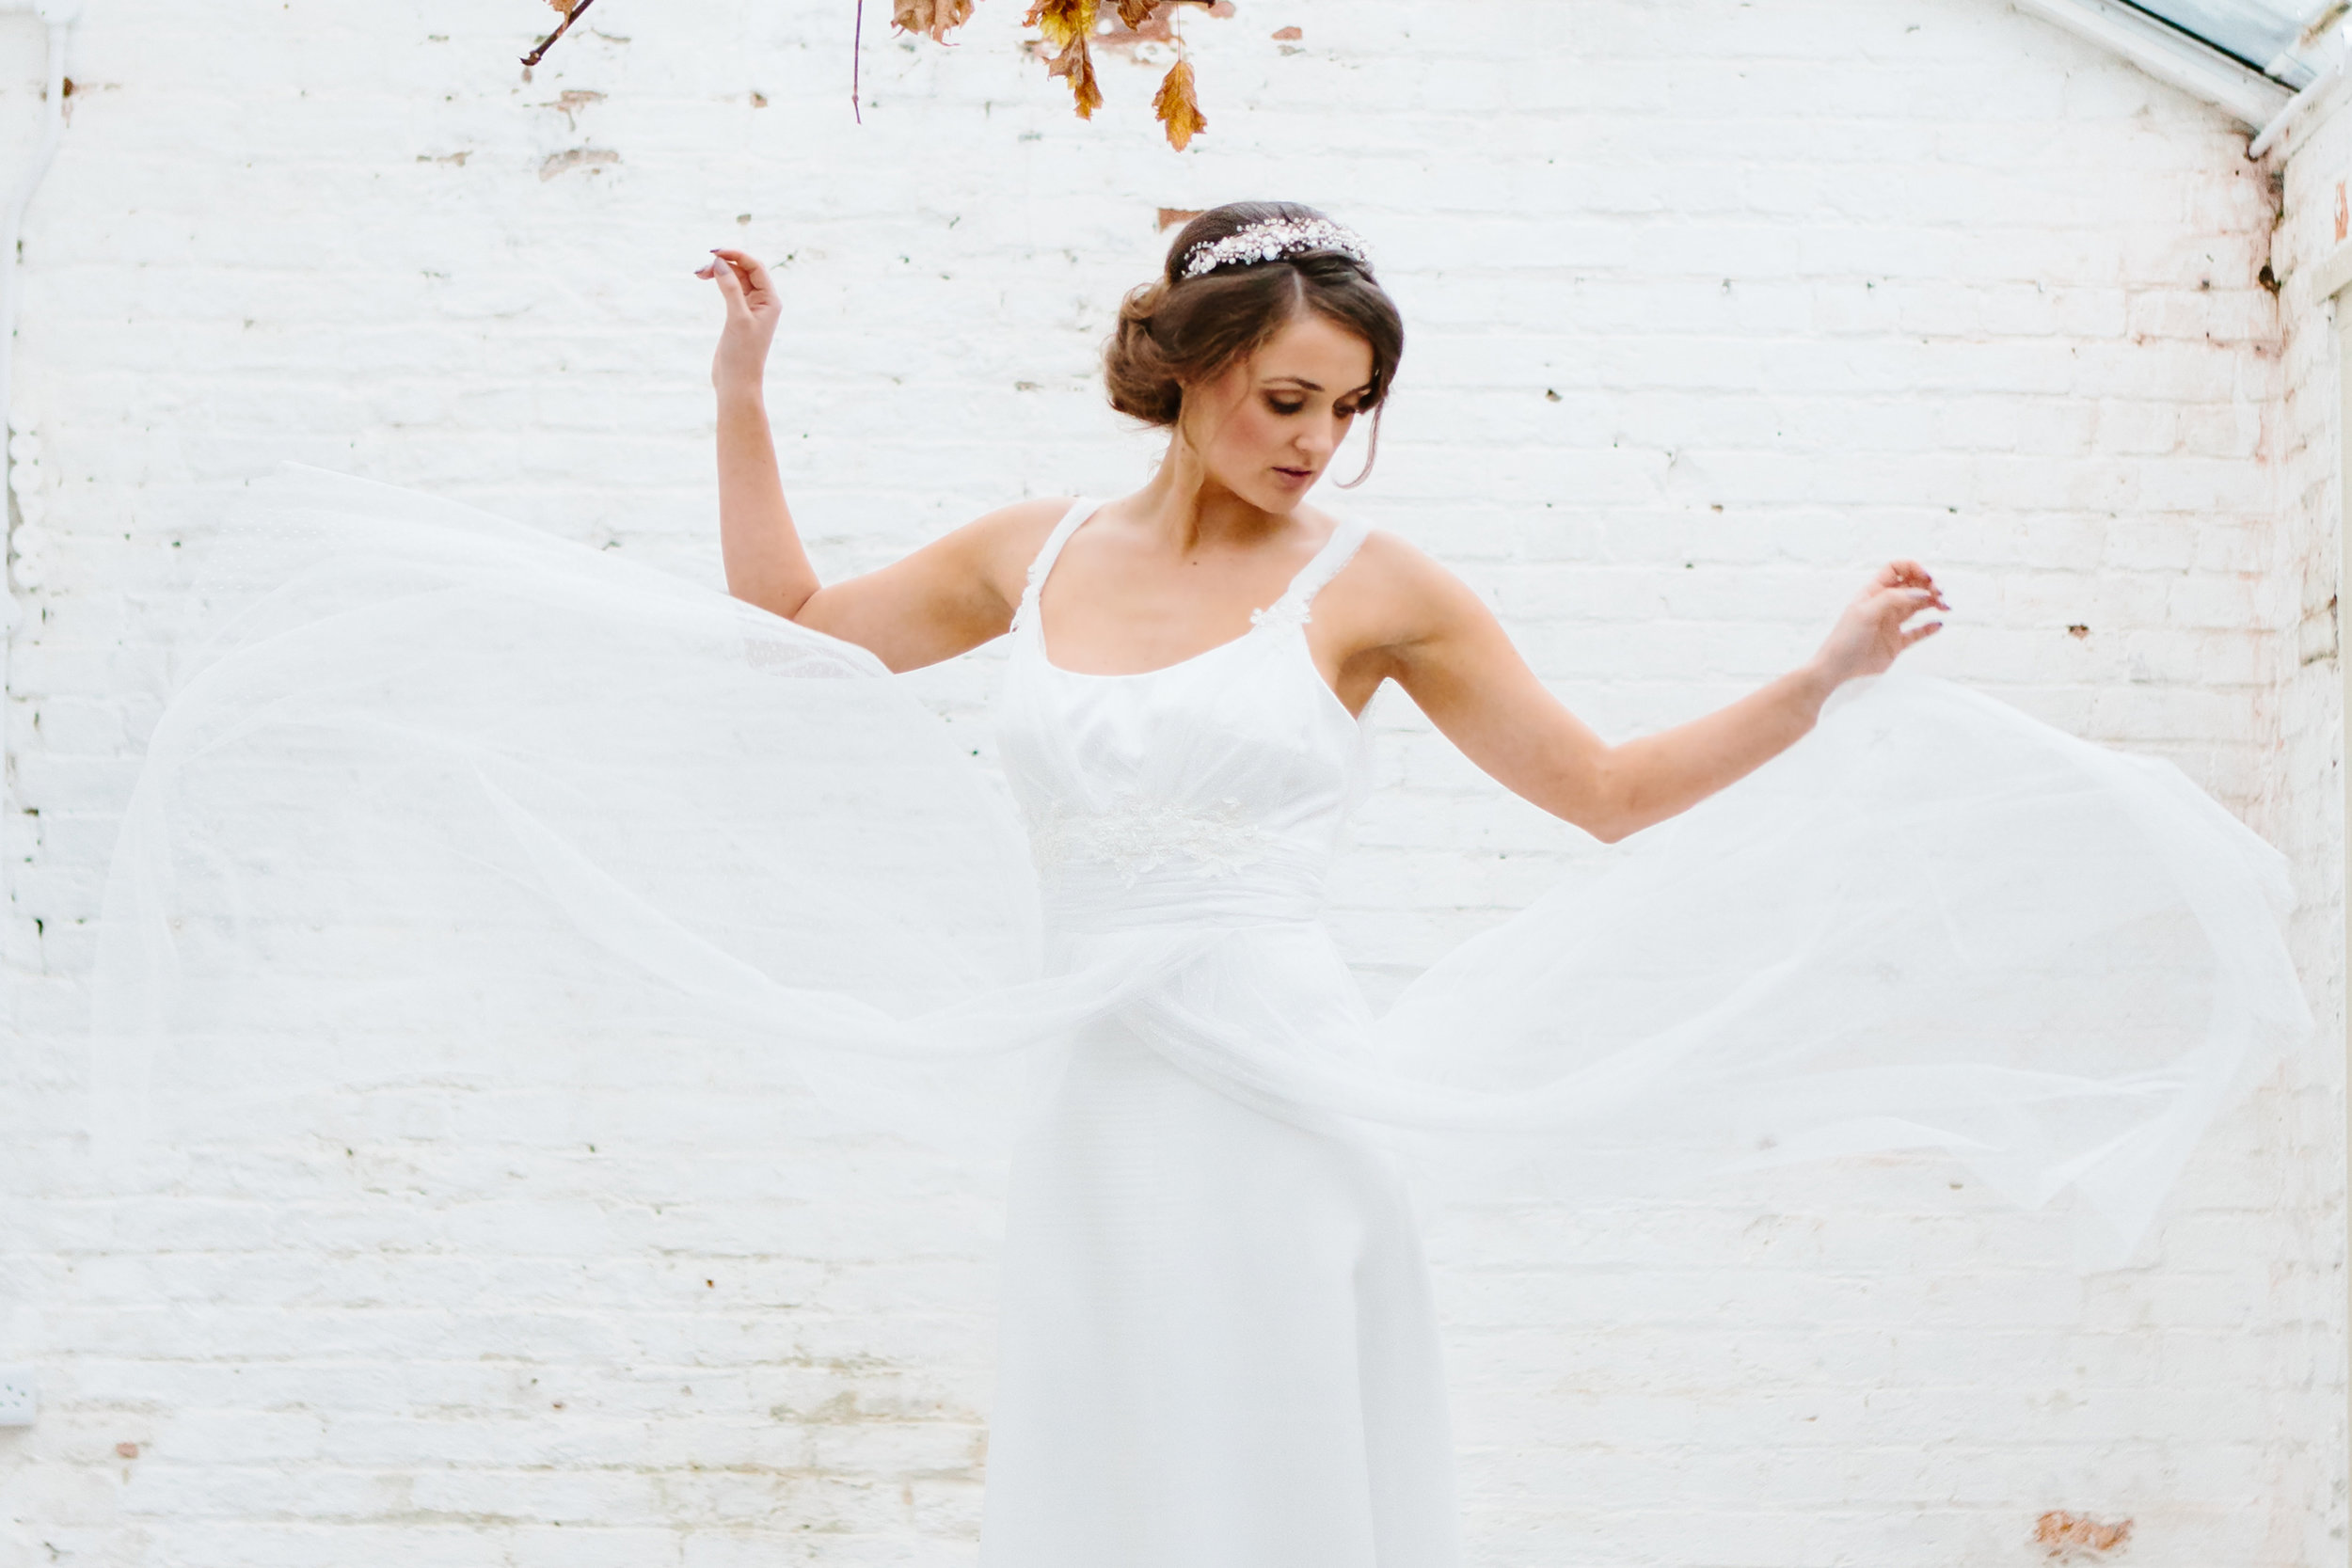 Whispers Of Love Cover Image Sarah Willard Wedding Dress Collection